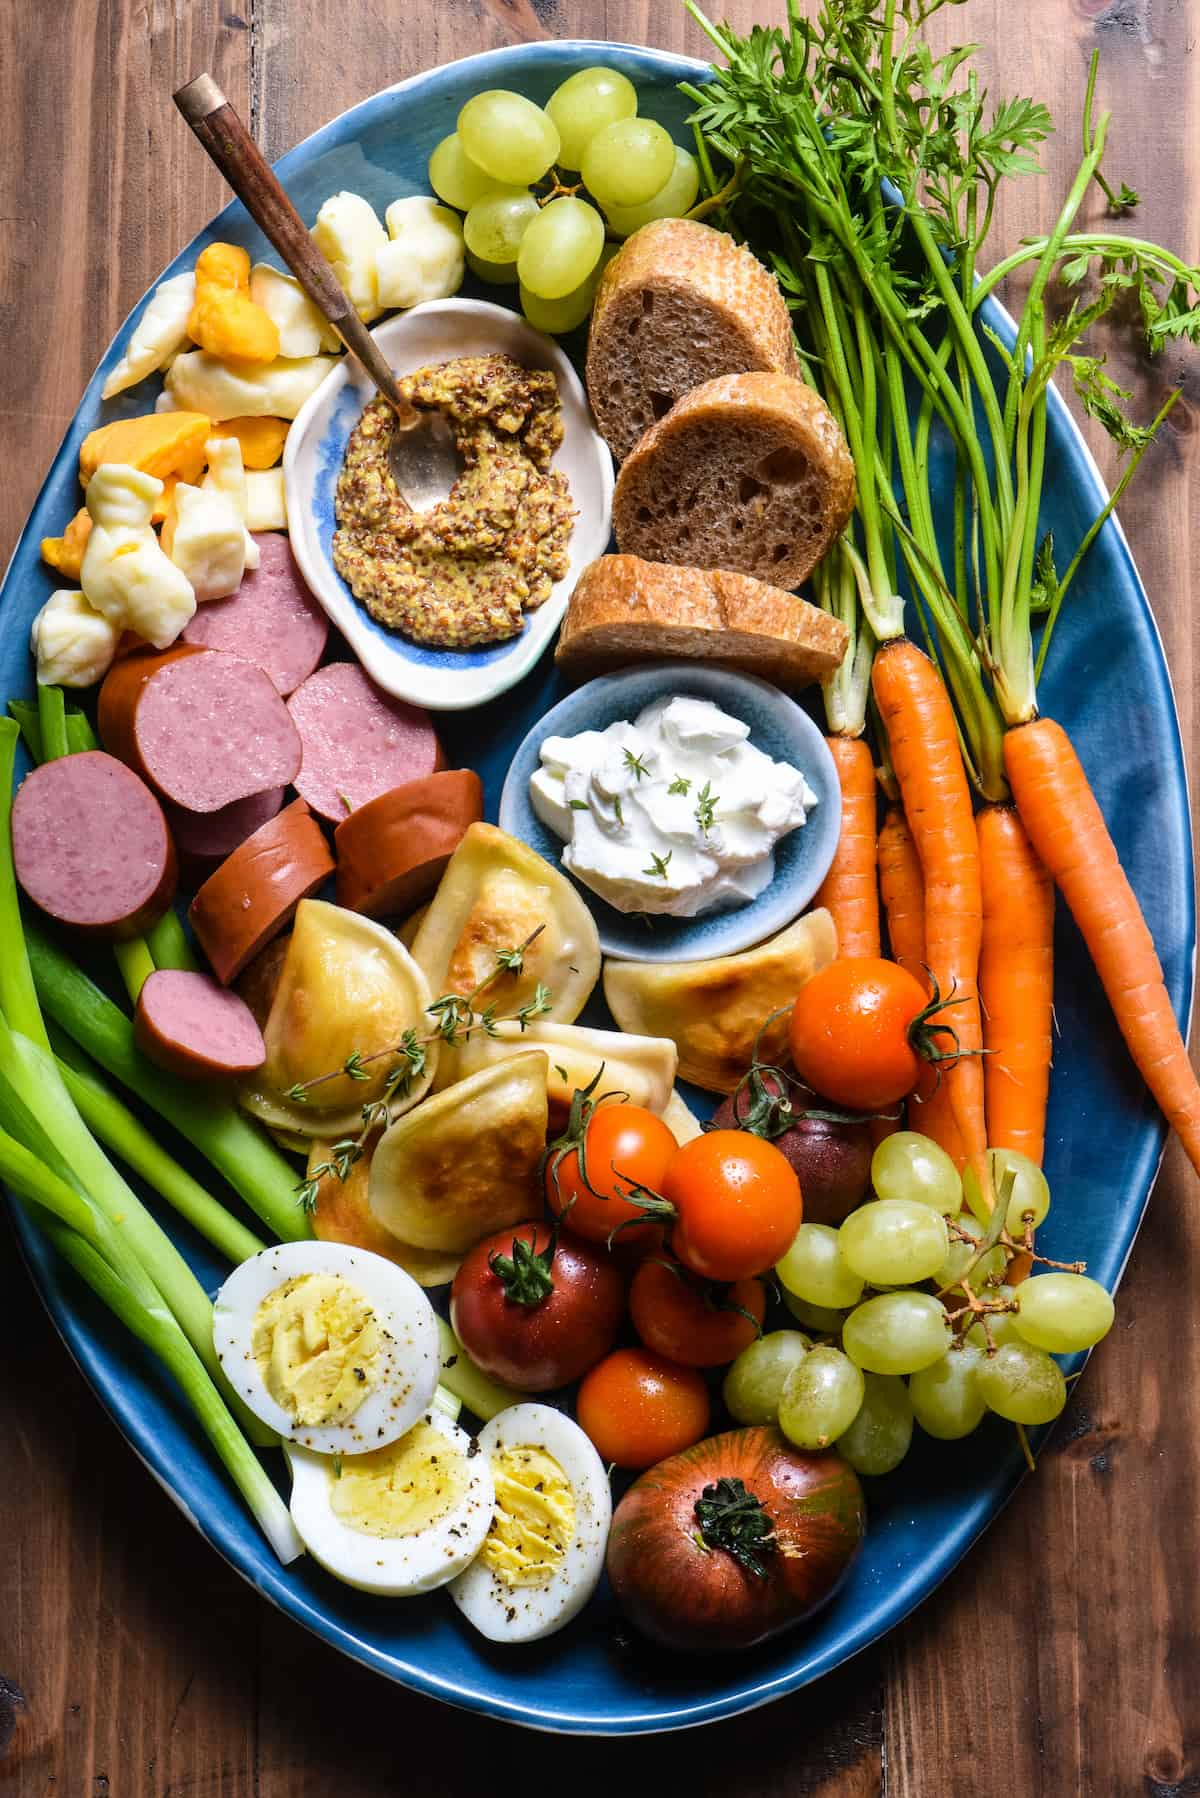 This Kielbasa & Pierogi Snack Dinner is a foolproof way to get the family gathered around the dinner table on a weeknight. There's something for everybody on this colorful platter! | foxeslovelemons.com